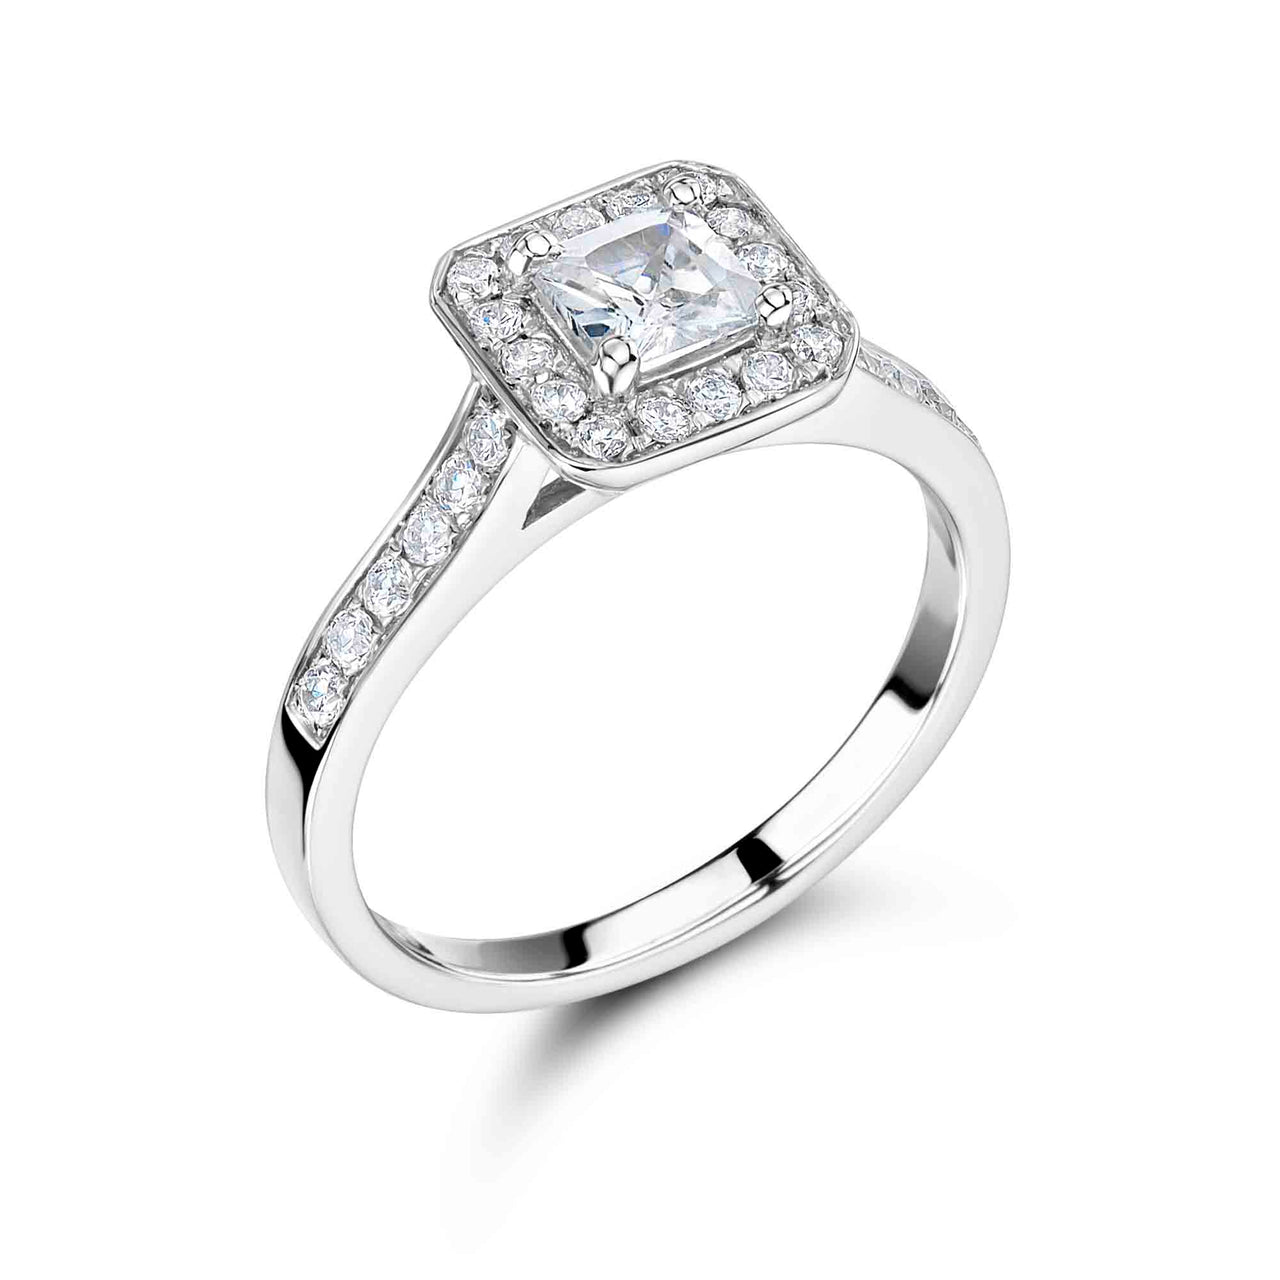 Vintage Surround Princess Cut Engagement Ring